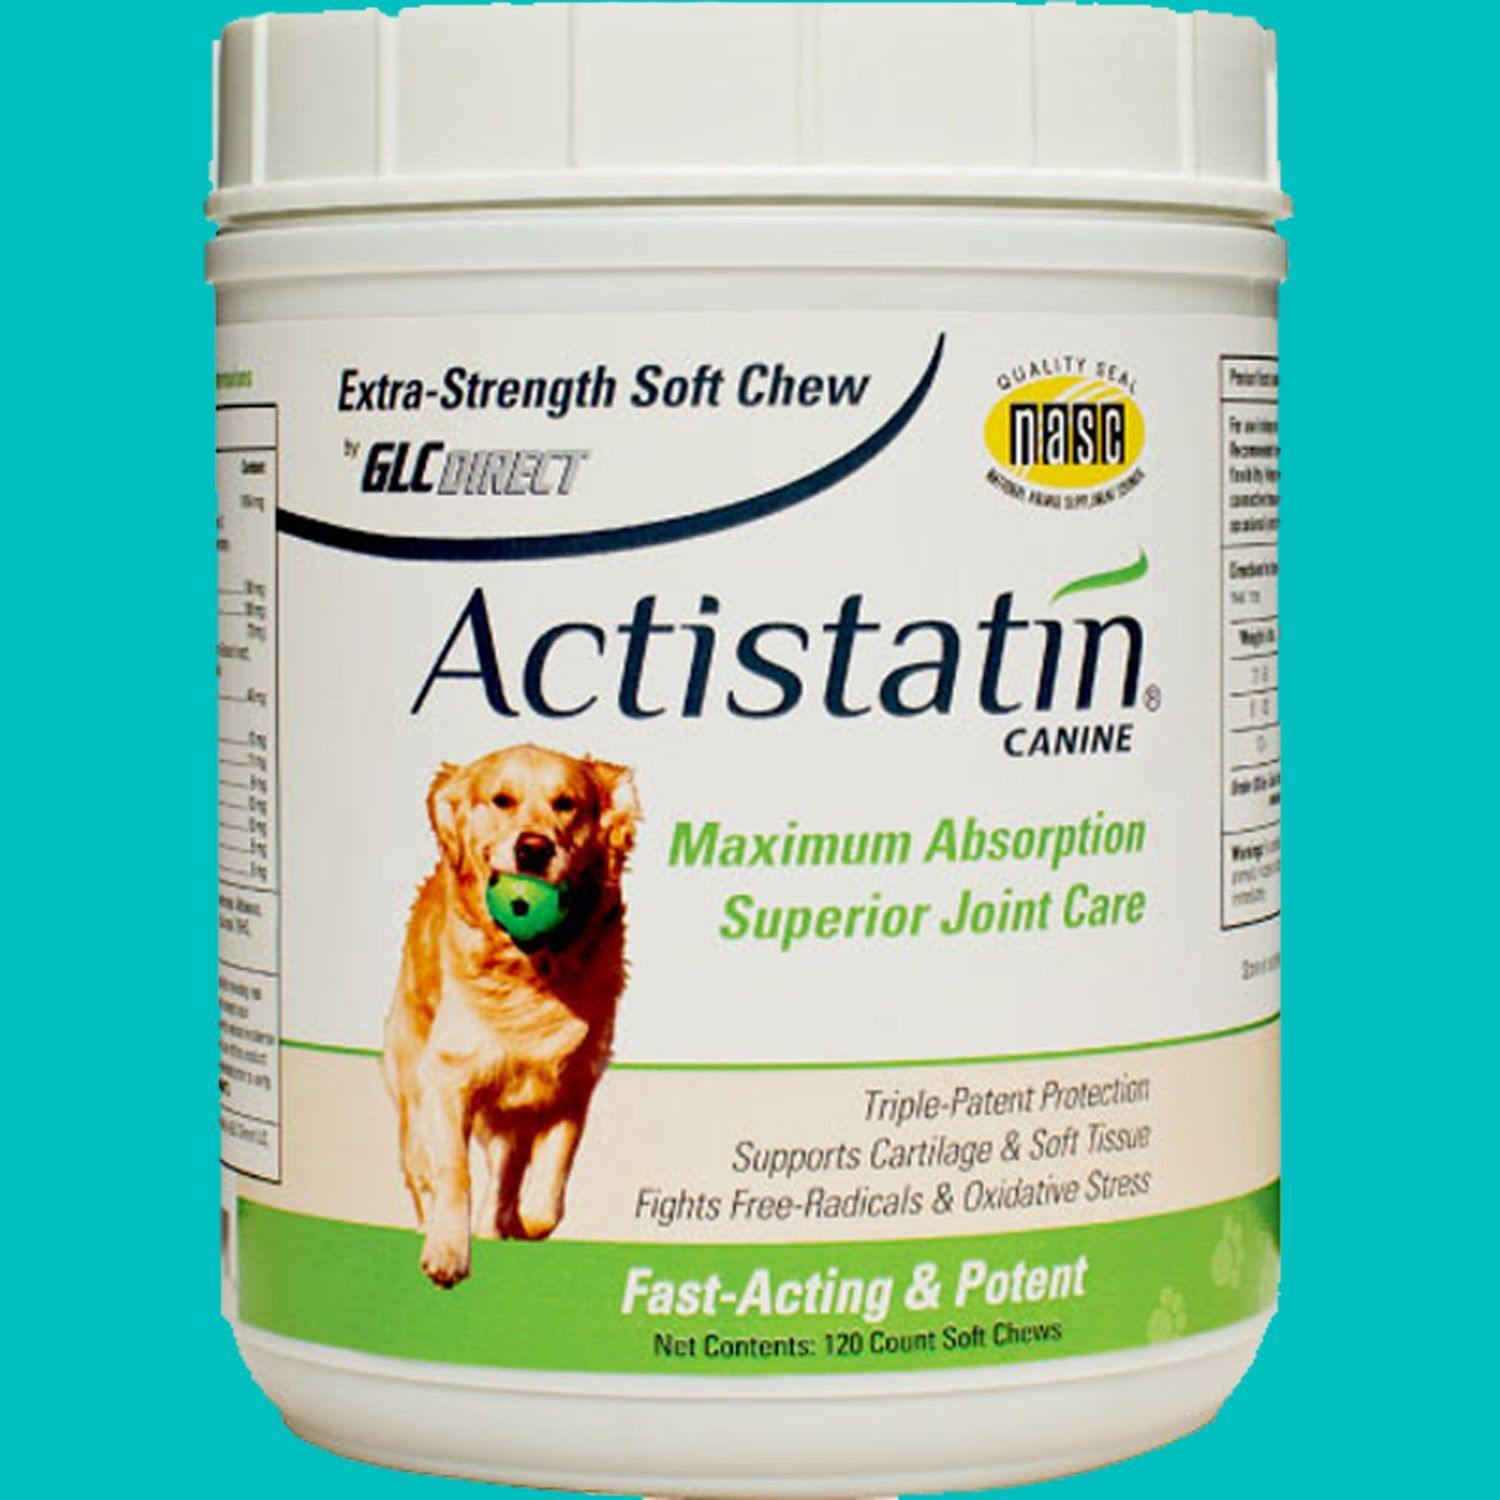 Actistatin® Canine 120 Count